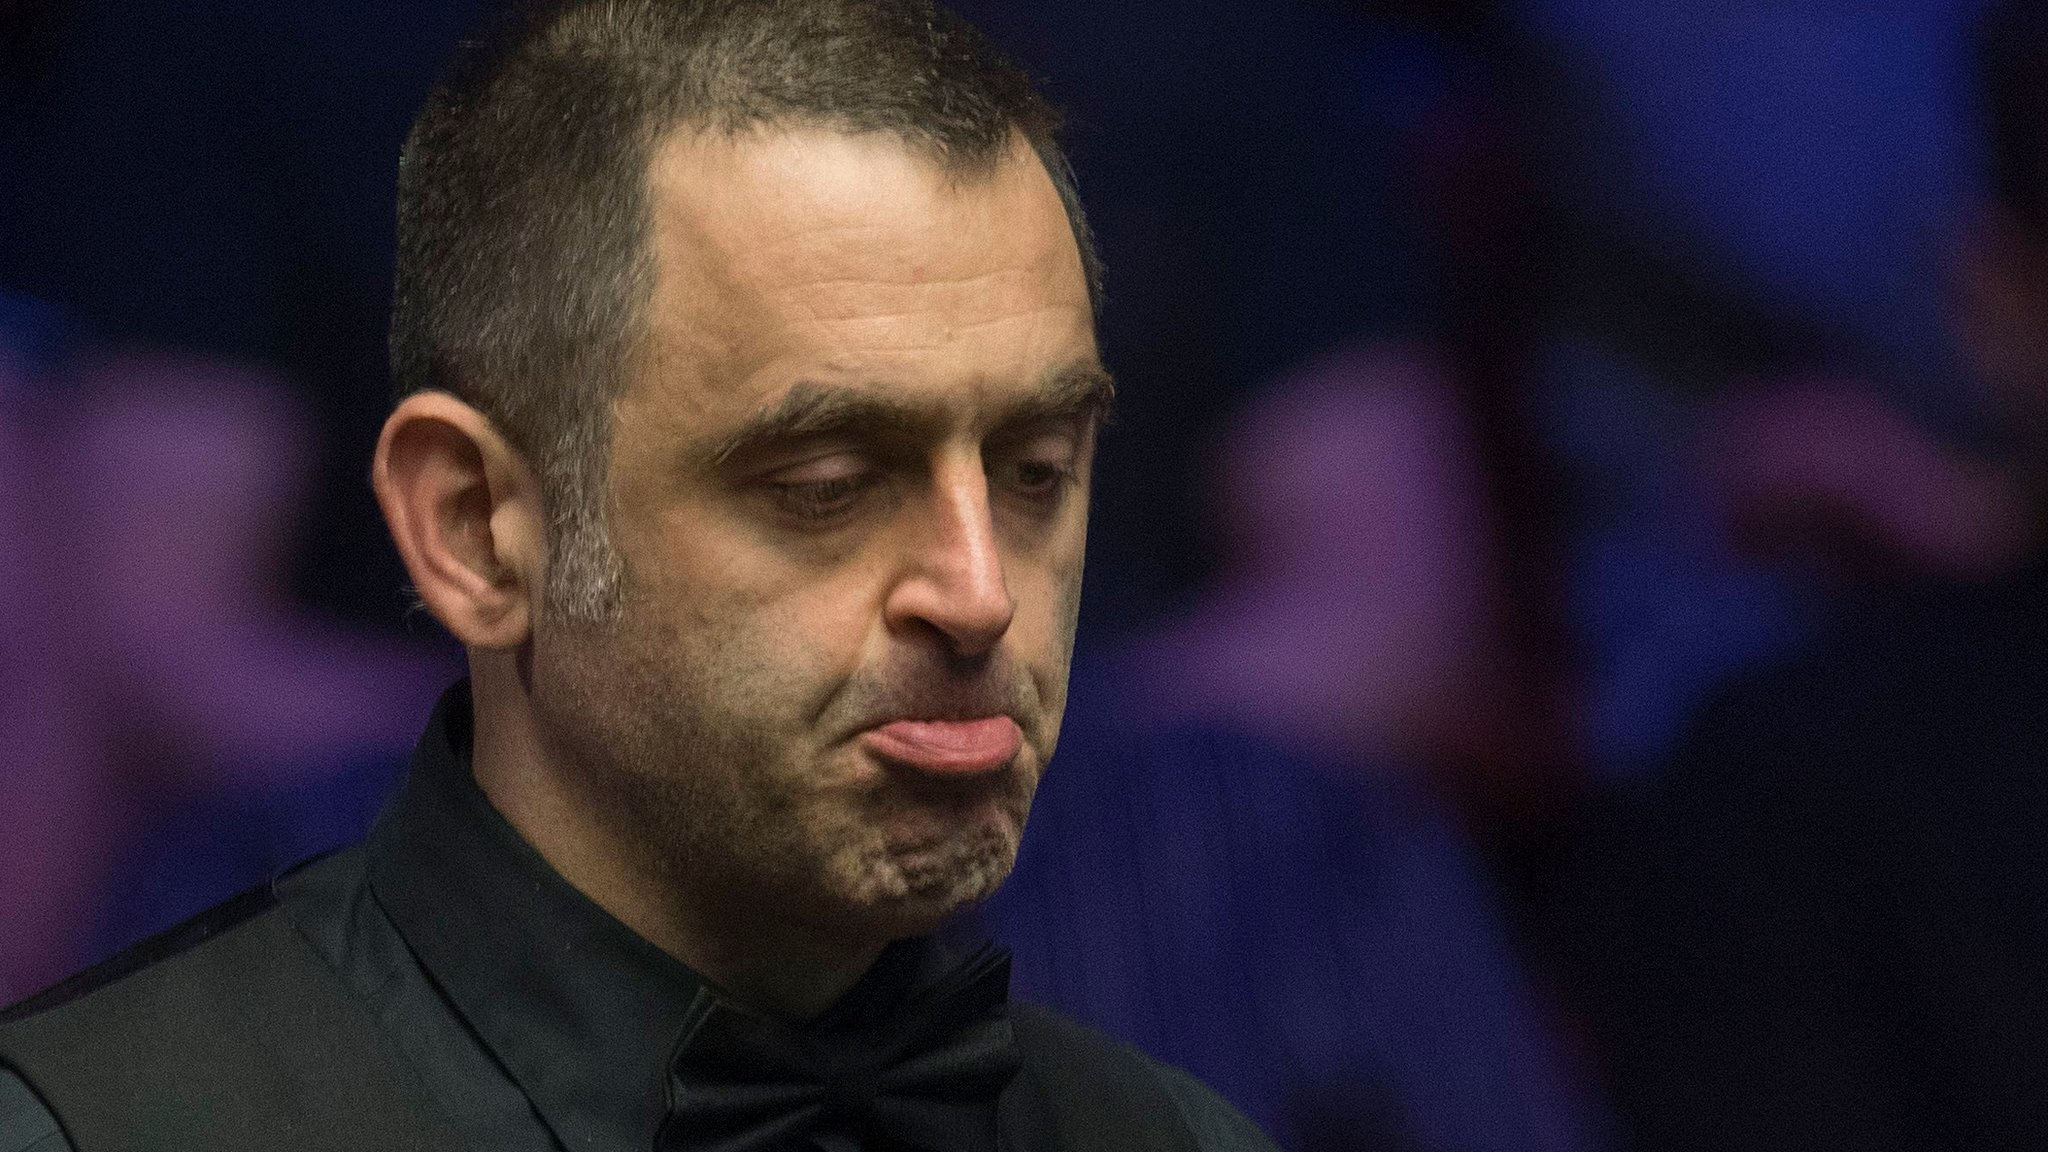 Five-time champion and world number one O'Sullivan beaten by amateur Cahill